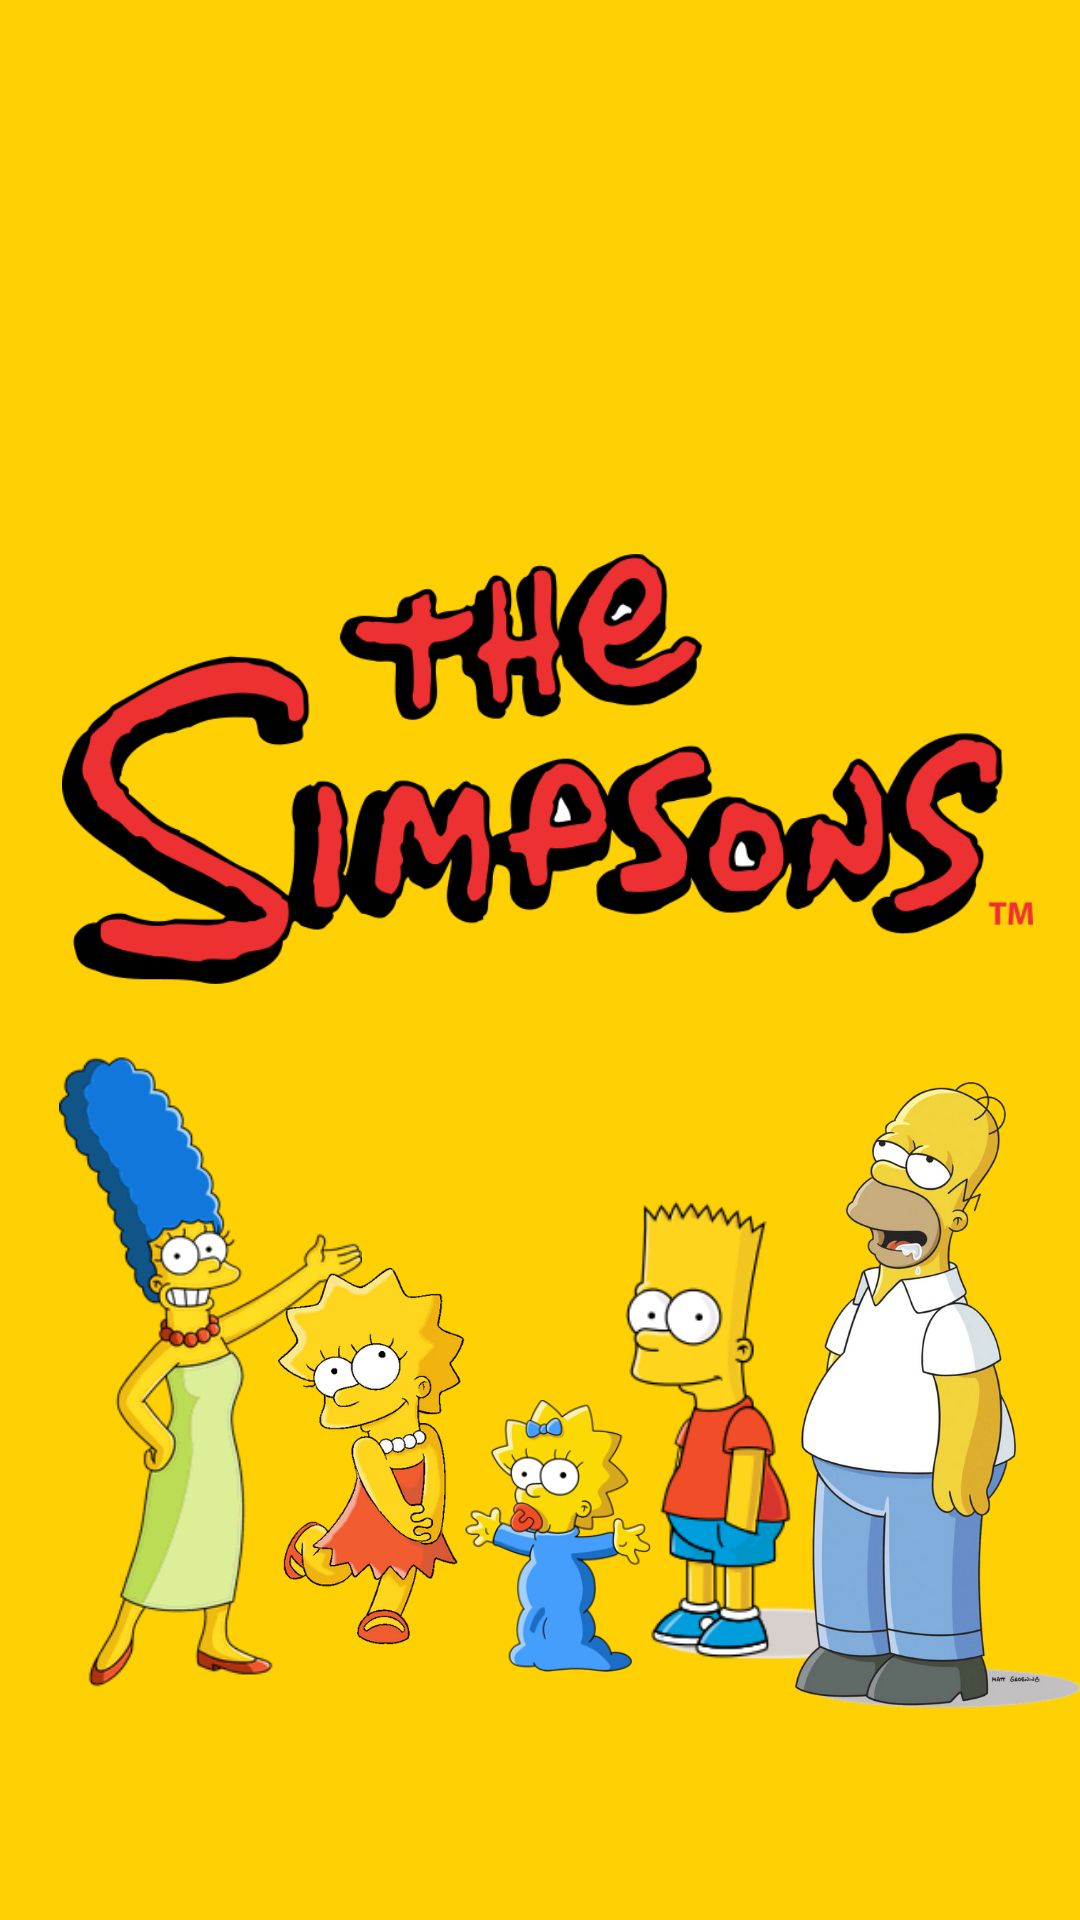 16+ Cool simpsons backgrounds 4k UHD